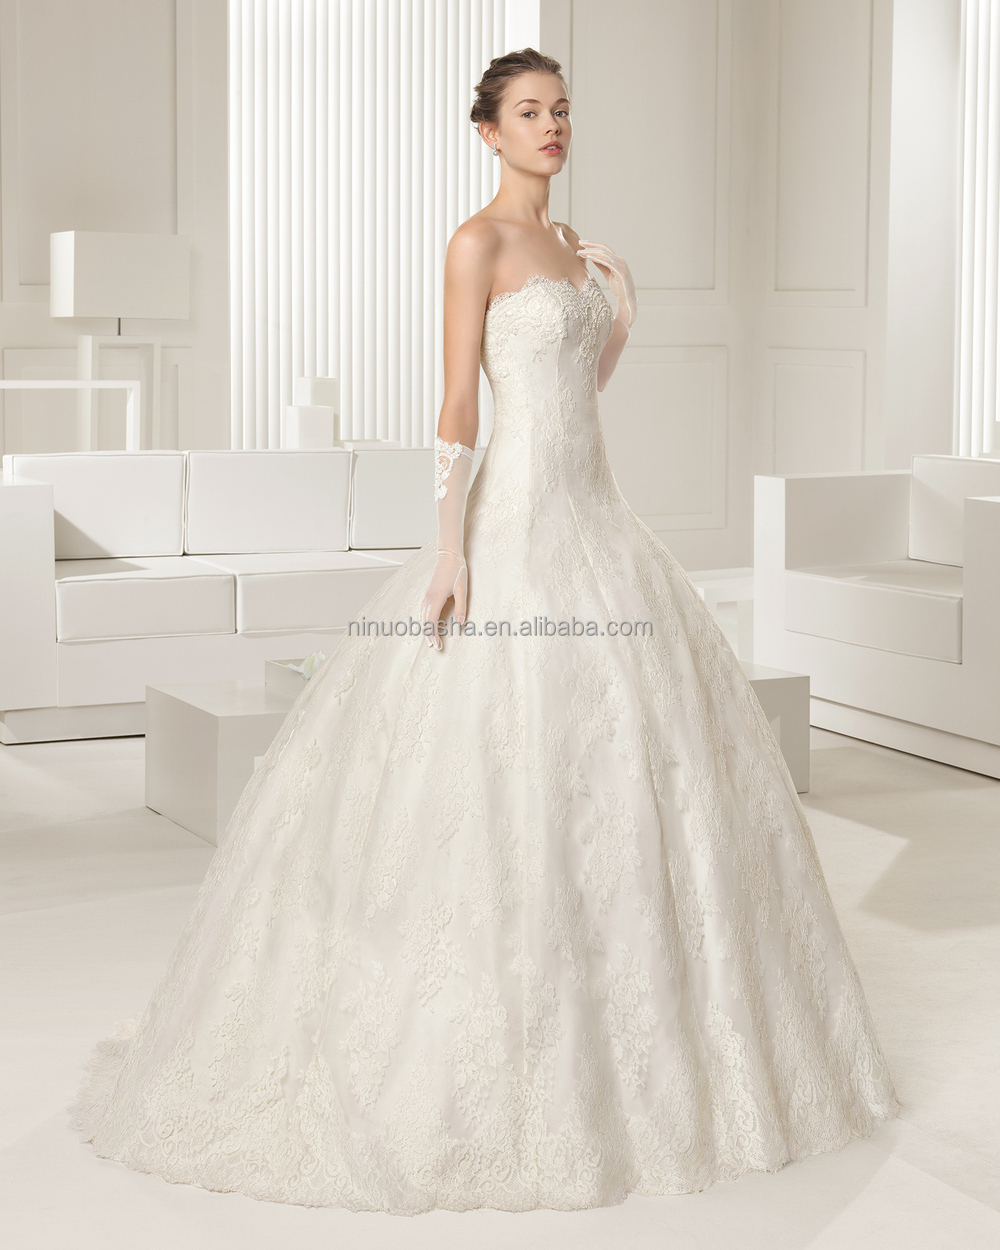 whole famous designer 2017 lace ball gown wedding dress with